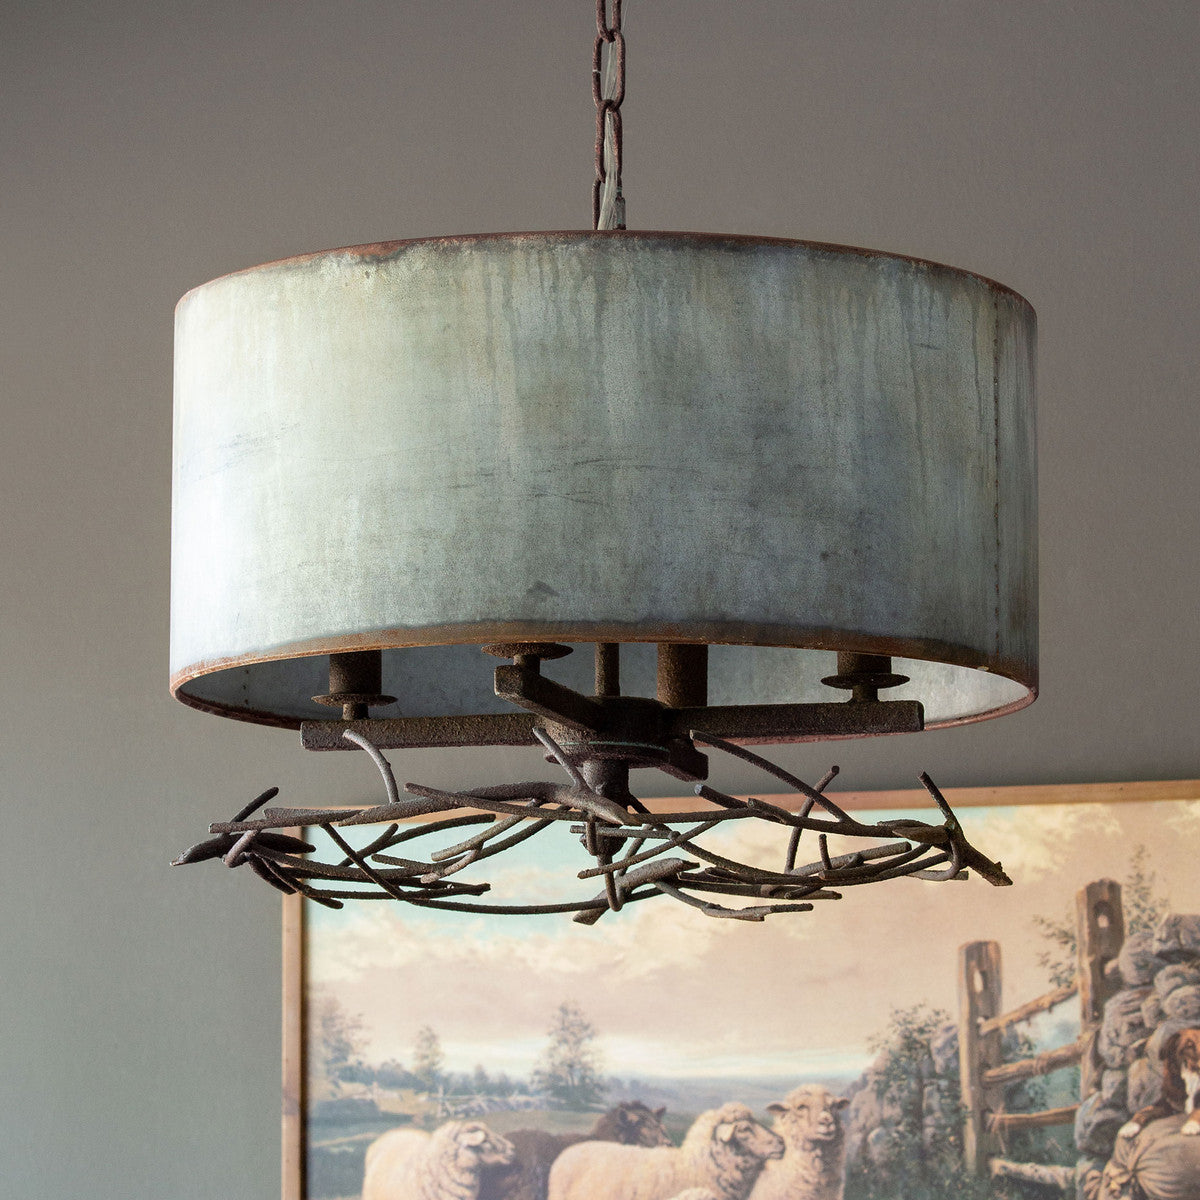 Lovecup Twig and Metal Farmhouse Chandelier L160